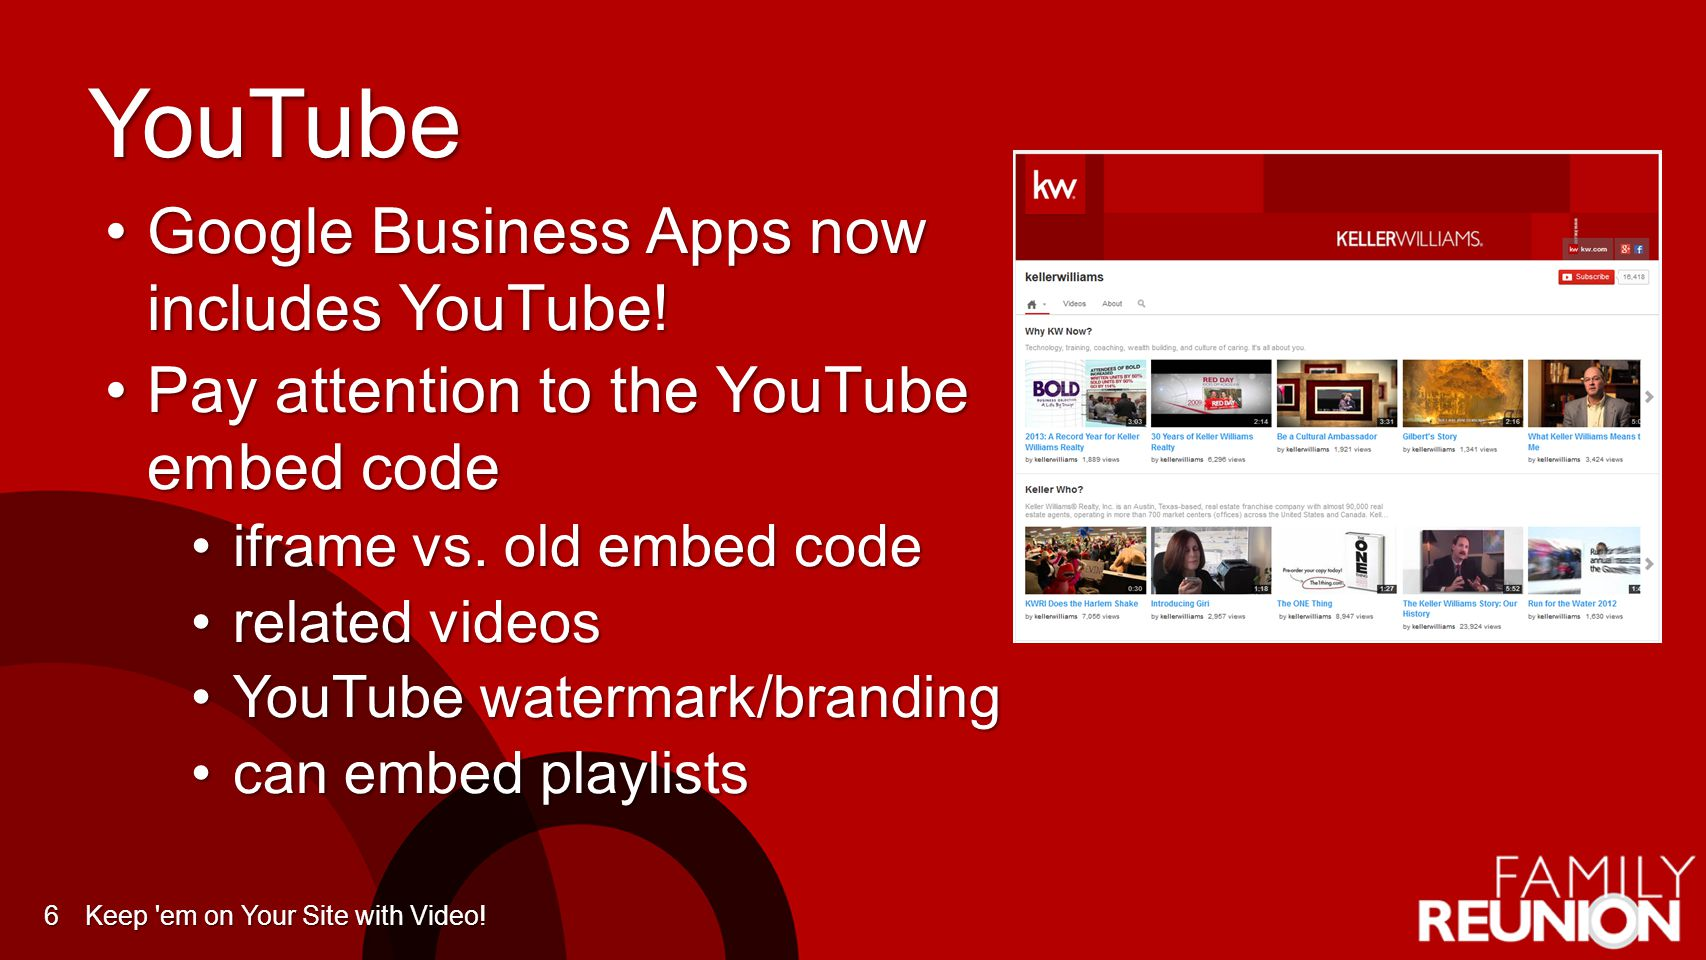 YouTube Google Business Apps now includes YouTube!Google Business Apps now includes YouTube! Pay attention to the YouTube embed codePay attention to t